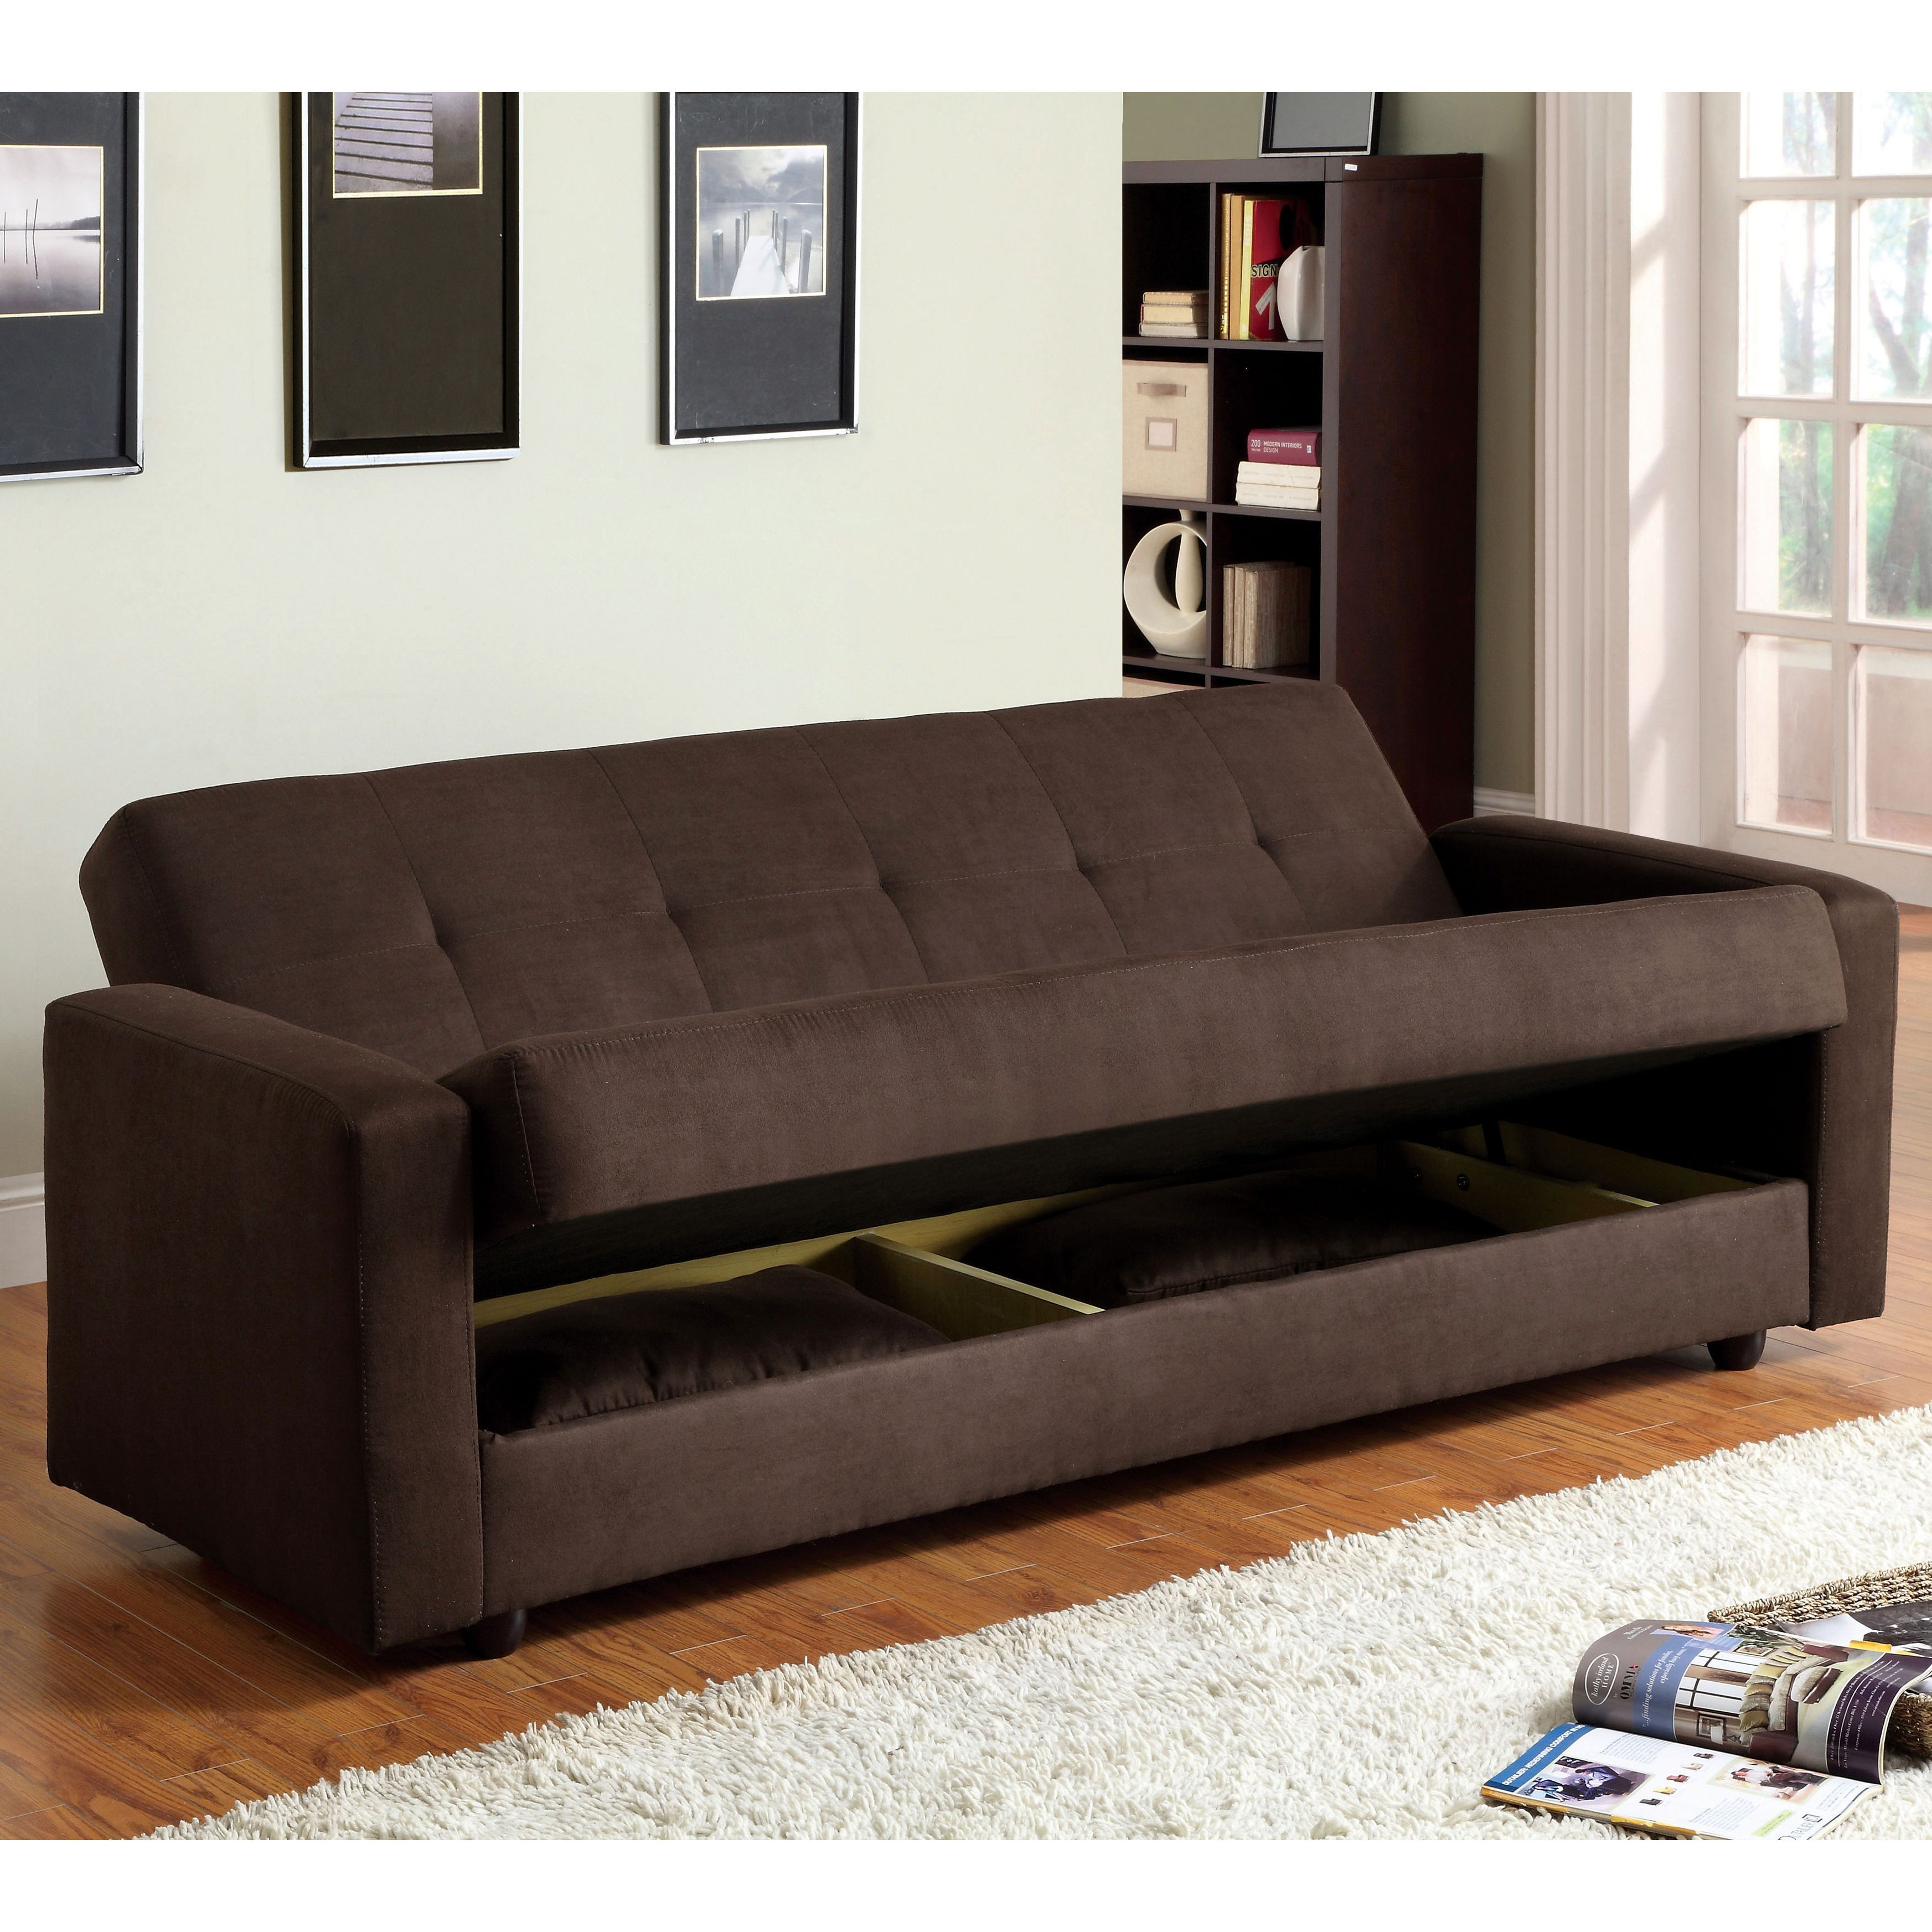 office futon. Furniture Of America Cozy Microfiber Futon Sofa Bed With Storage (Espresso), Brown, Office D